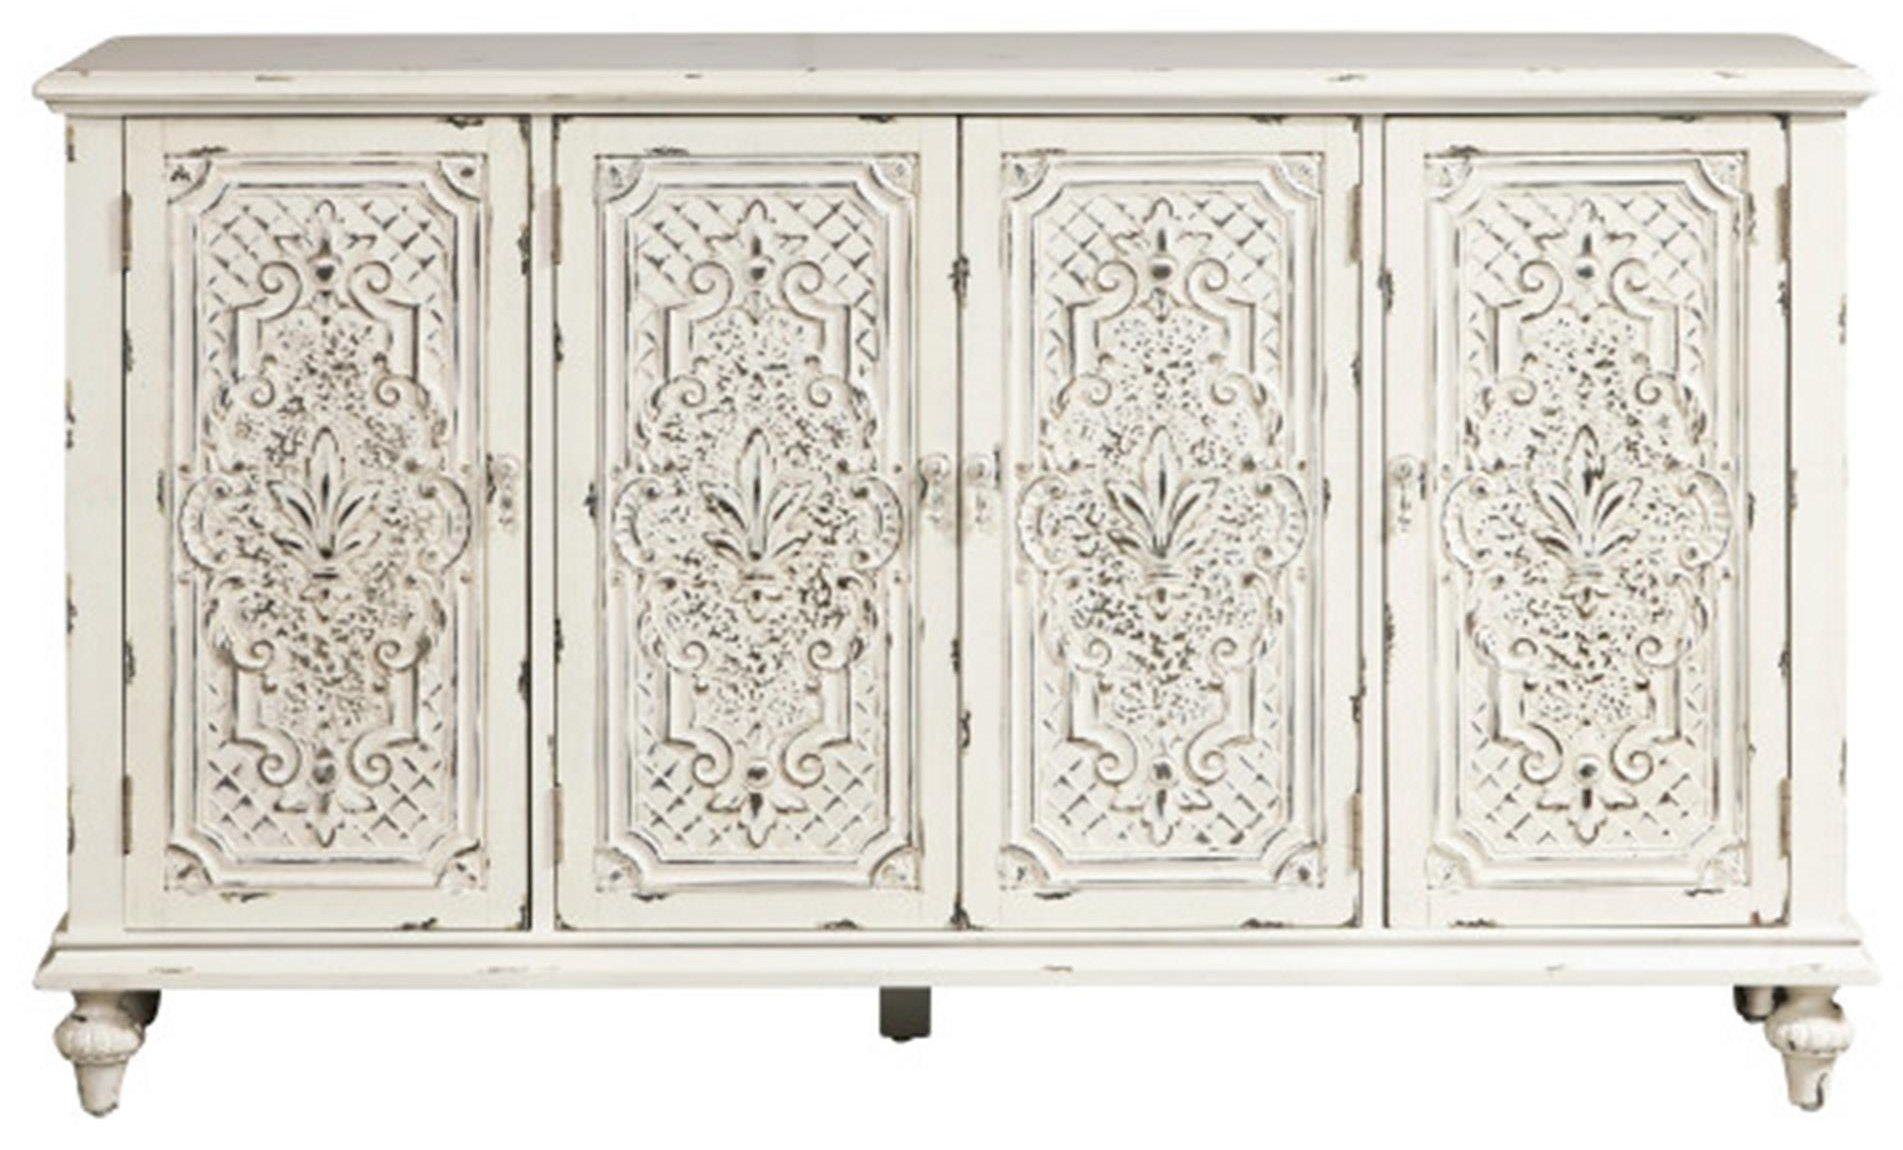 Accents Ornate 4 Door Credenzapulaski Furniture | Home Within 2017 Tott And Eling Sideboards (#2 of 20)